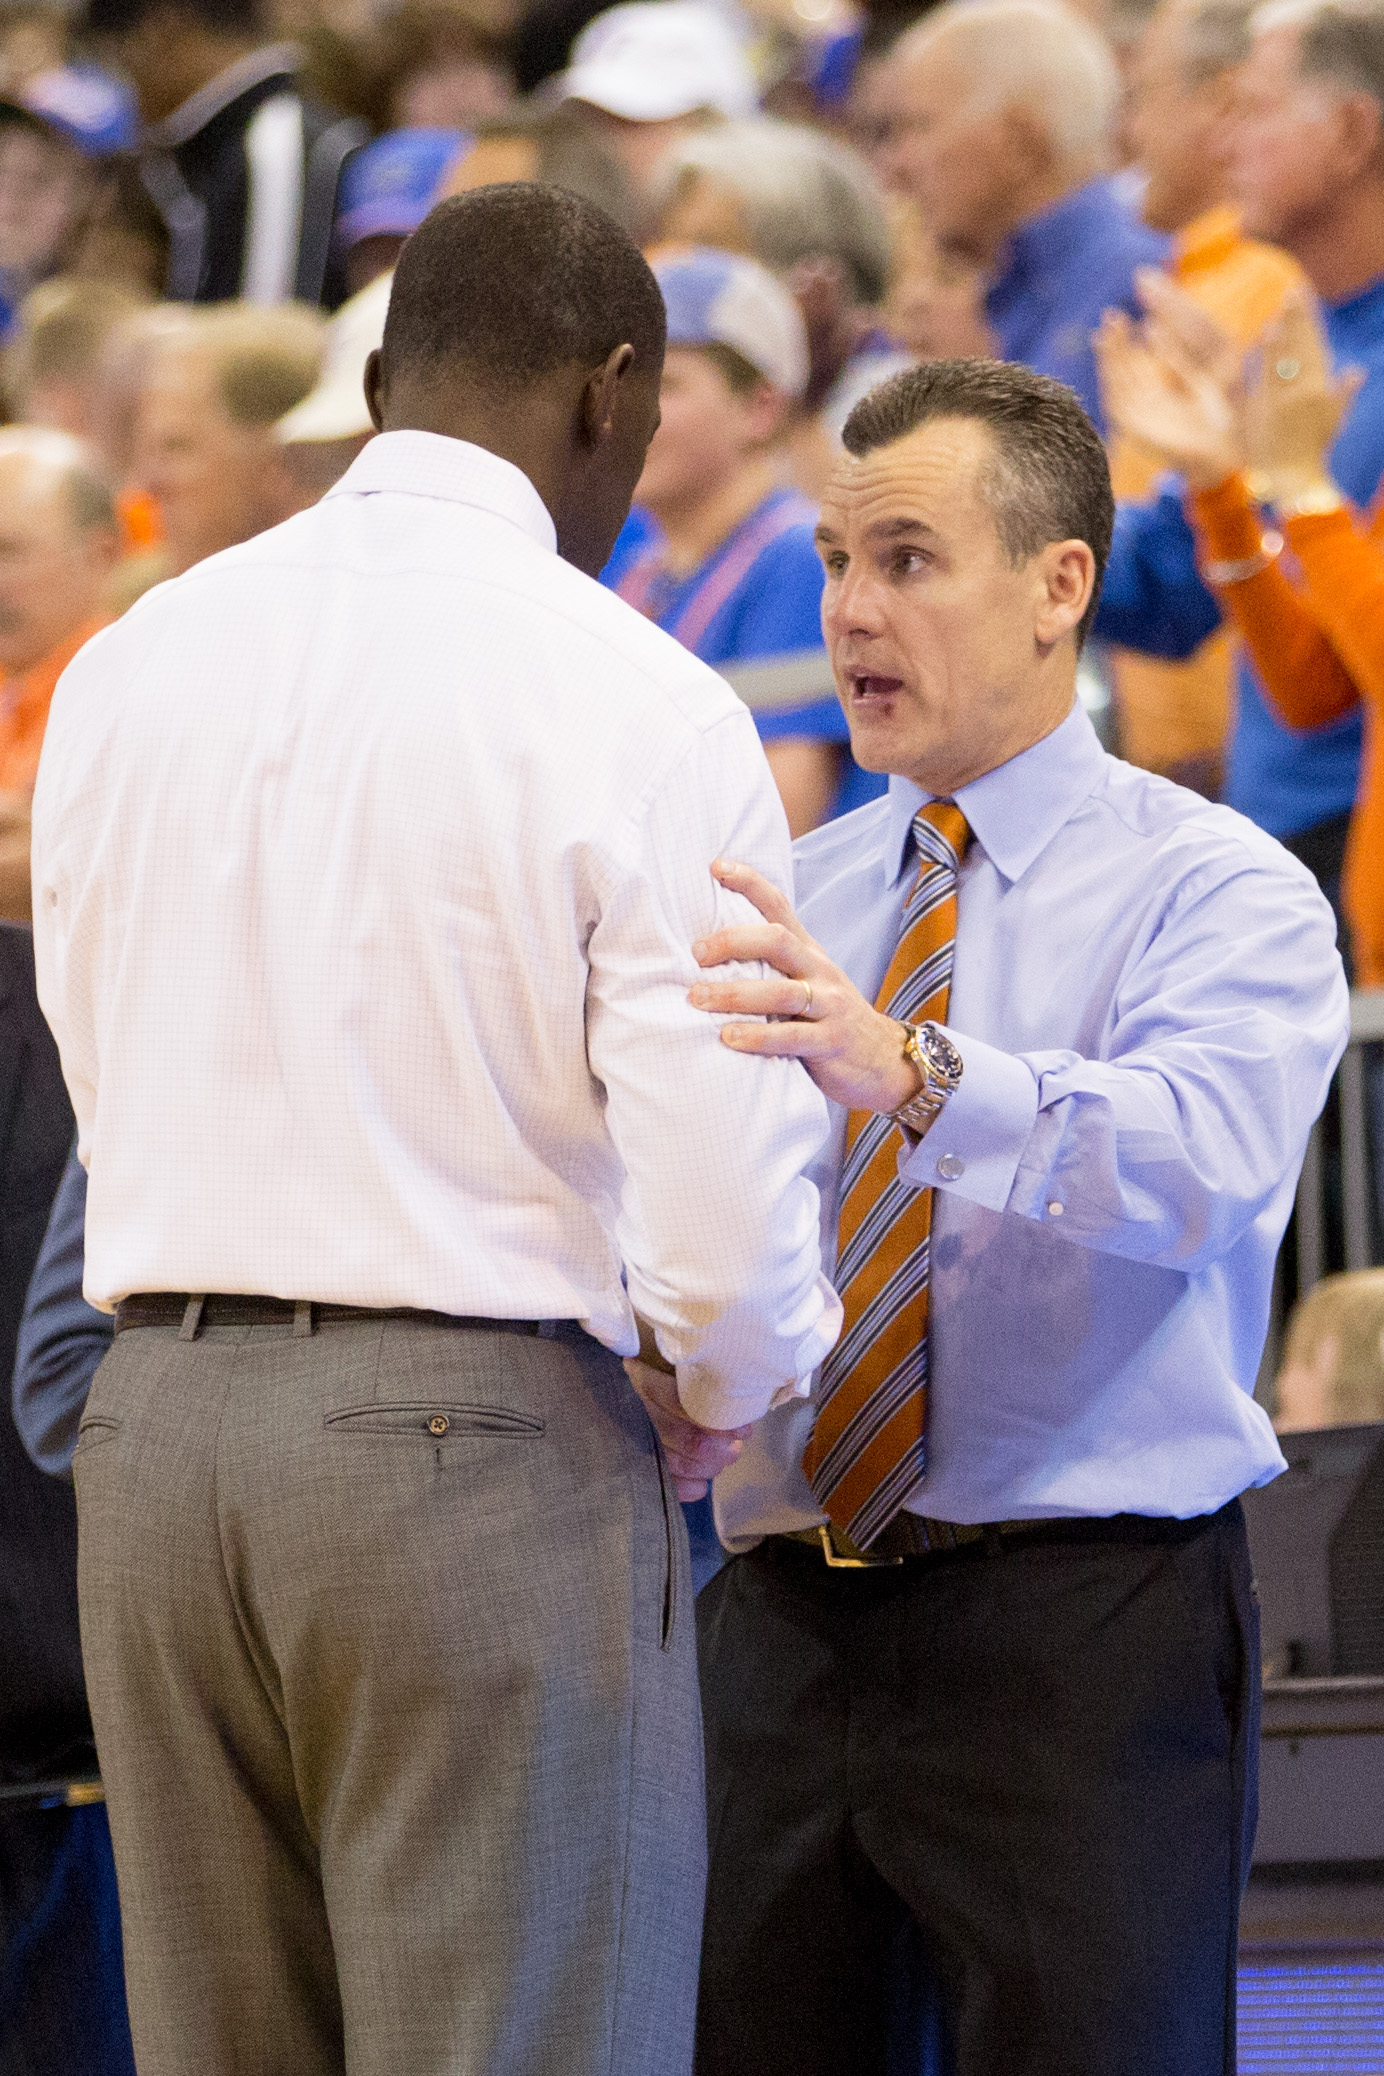 GAINESVILLE, FL - FEBRUARY 08: Head coach Billy Donovan of the Florida Gators and head coach Anthony Grant of the Alabama Crimson Tide shake hands after the game at the Stephen C. O'Connell Center on February 08, 2014 in Gainesville, Florida. (Photo by Rob Foldy/Getty Images)